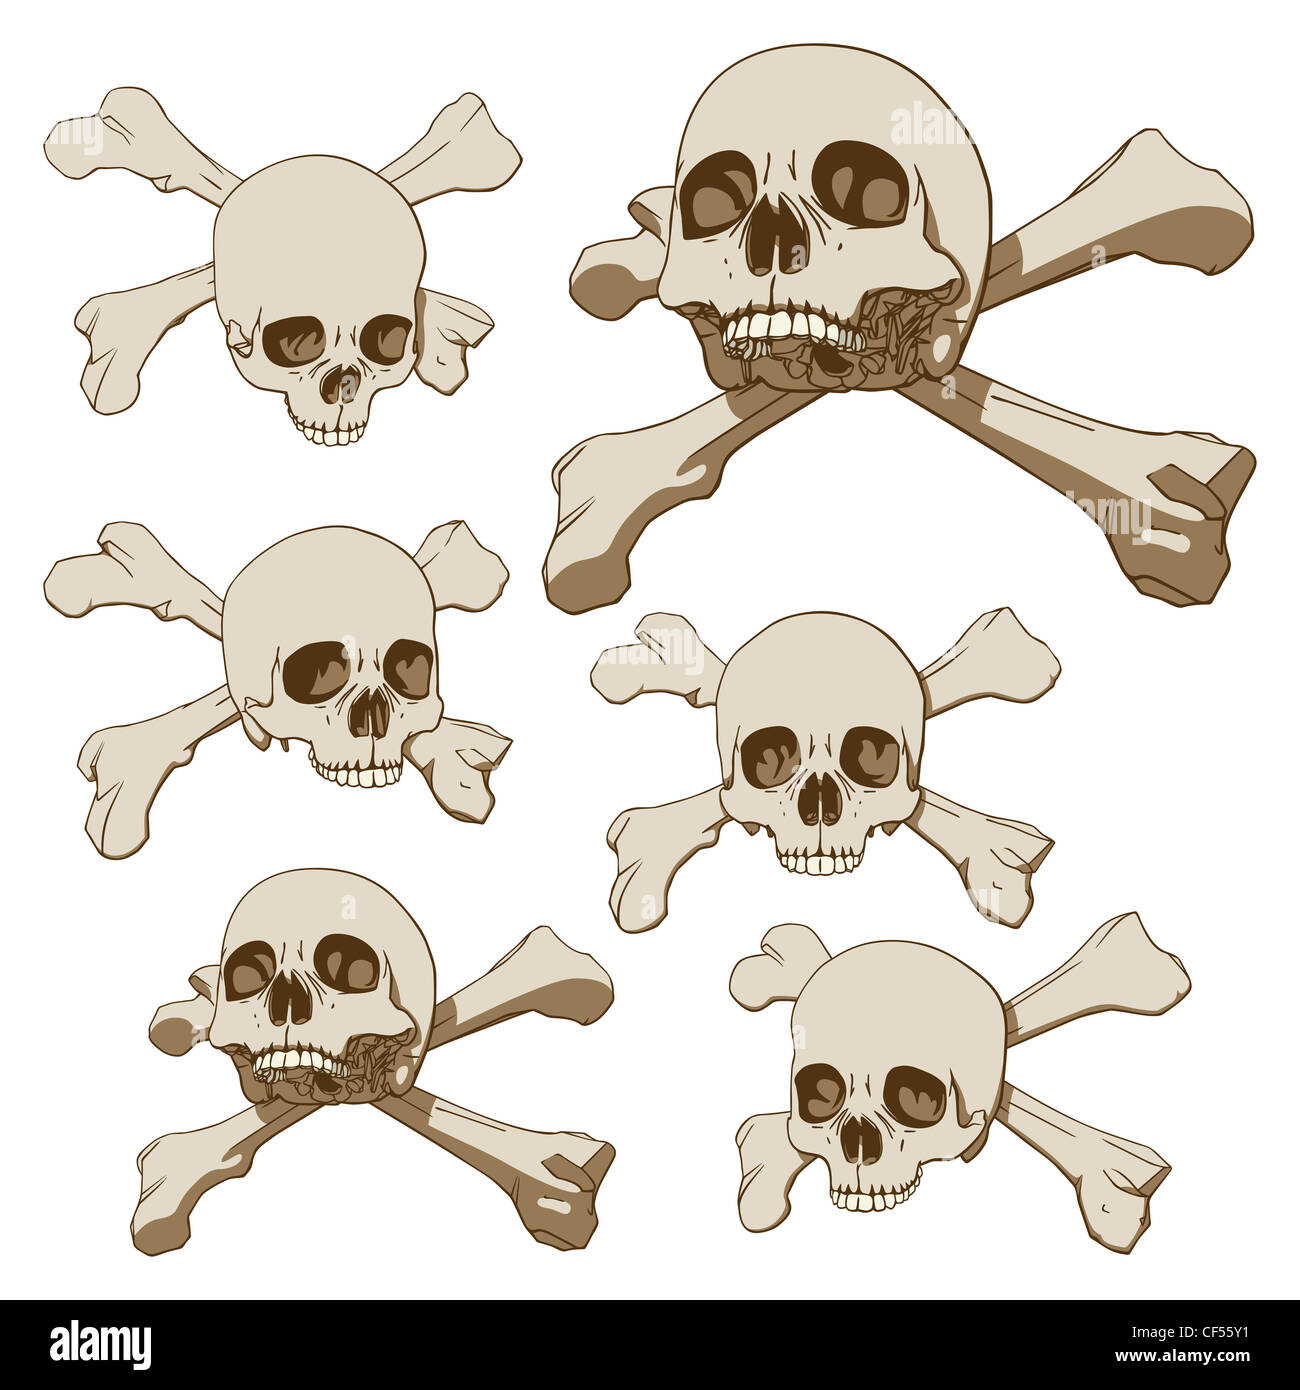 Set of five drawings of human skull with crossbones - Stock Image